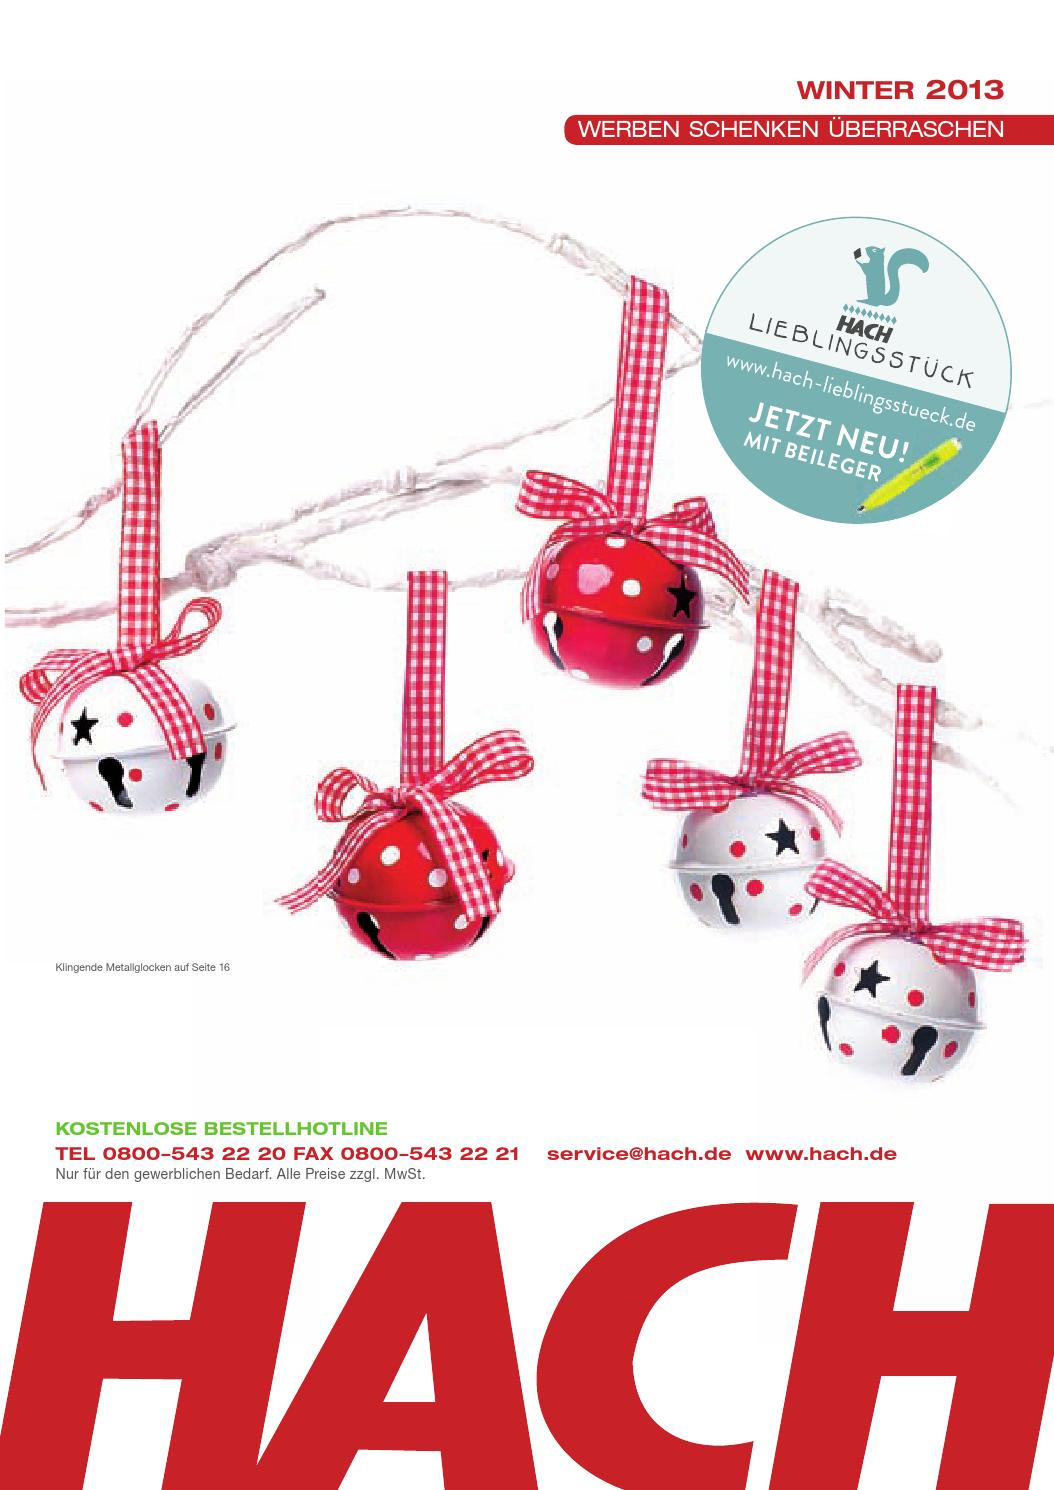 Hach Winter 2013 By Hach Gmbh Co Kg Issuu